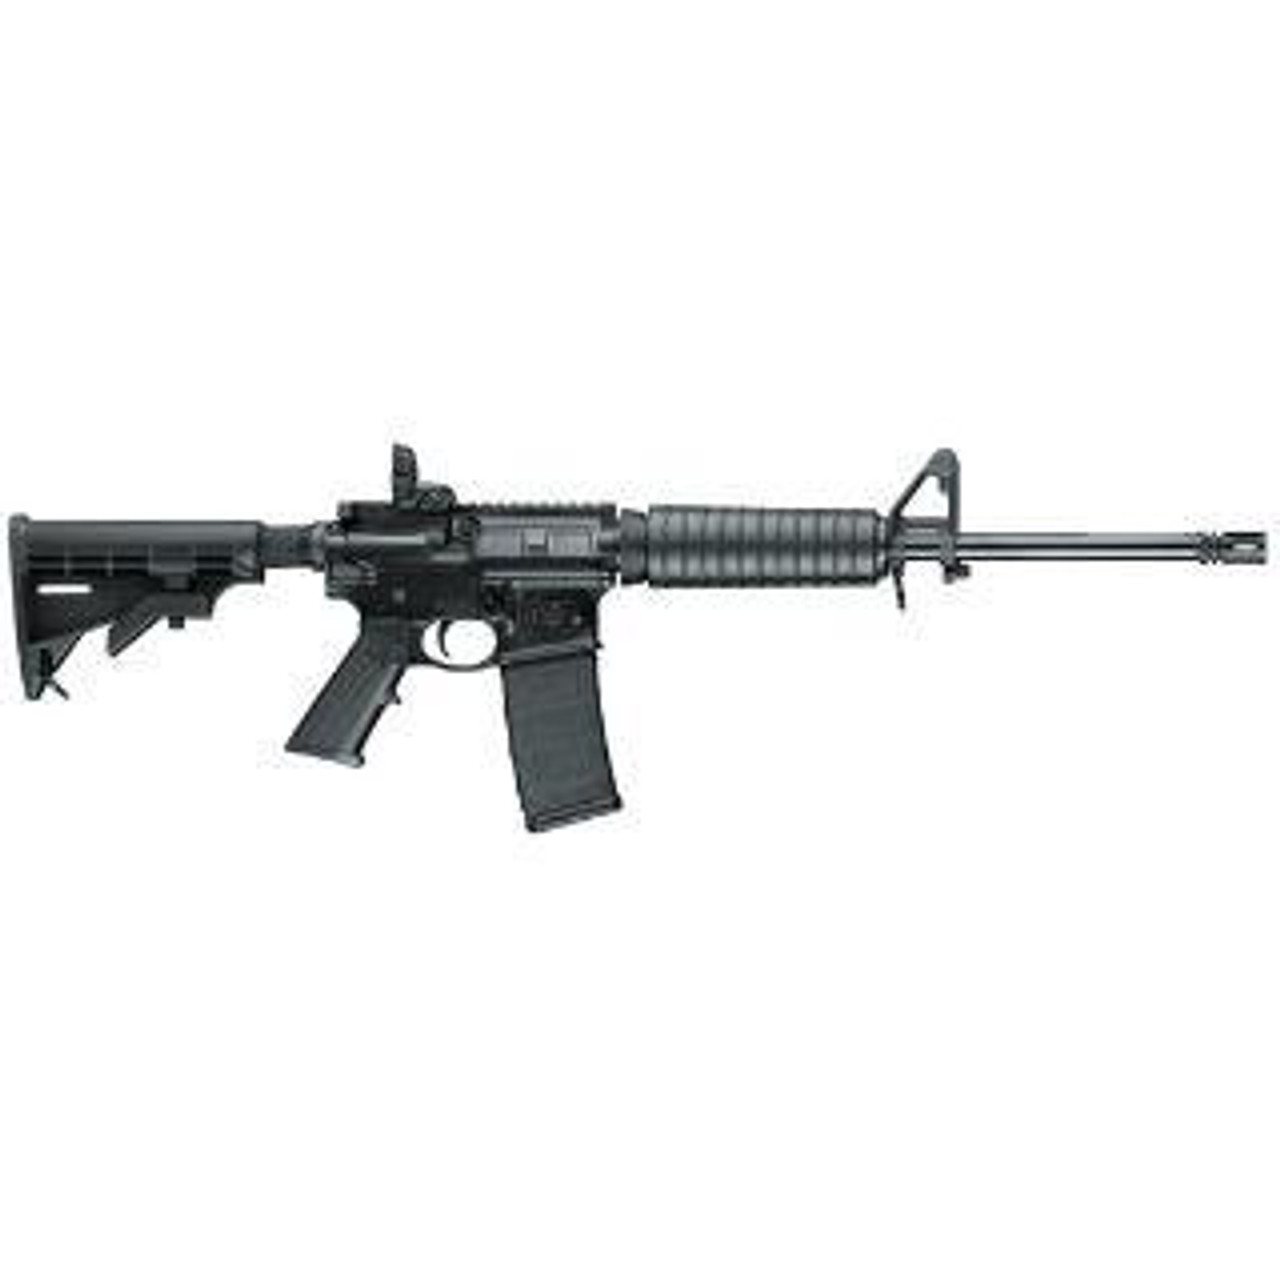 Smith and Wesson M&P 15 Sport II CALIFORNIA LEGAL 5.56